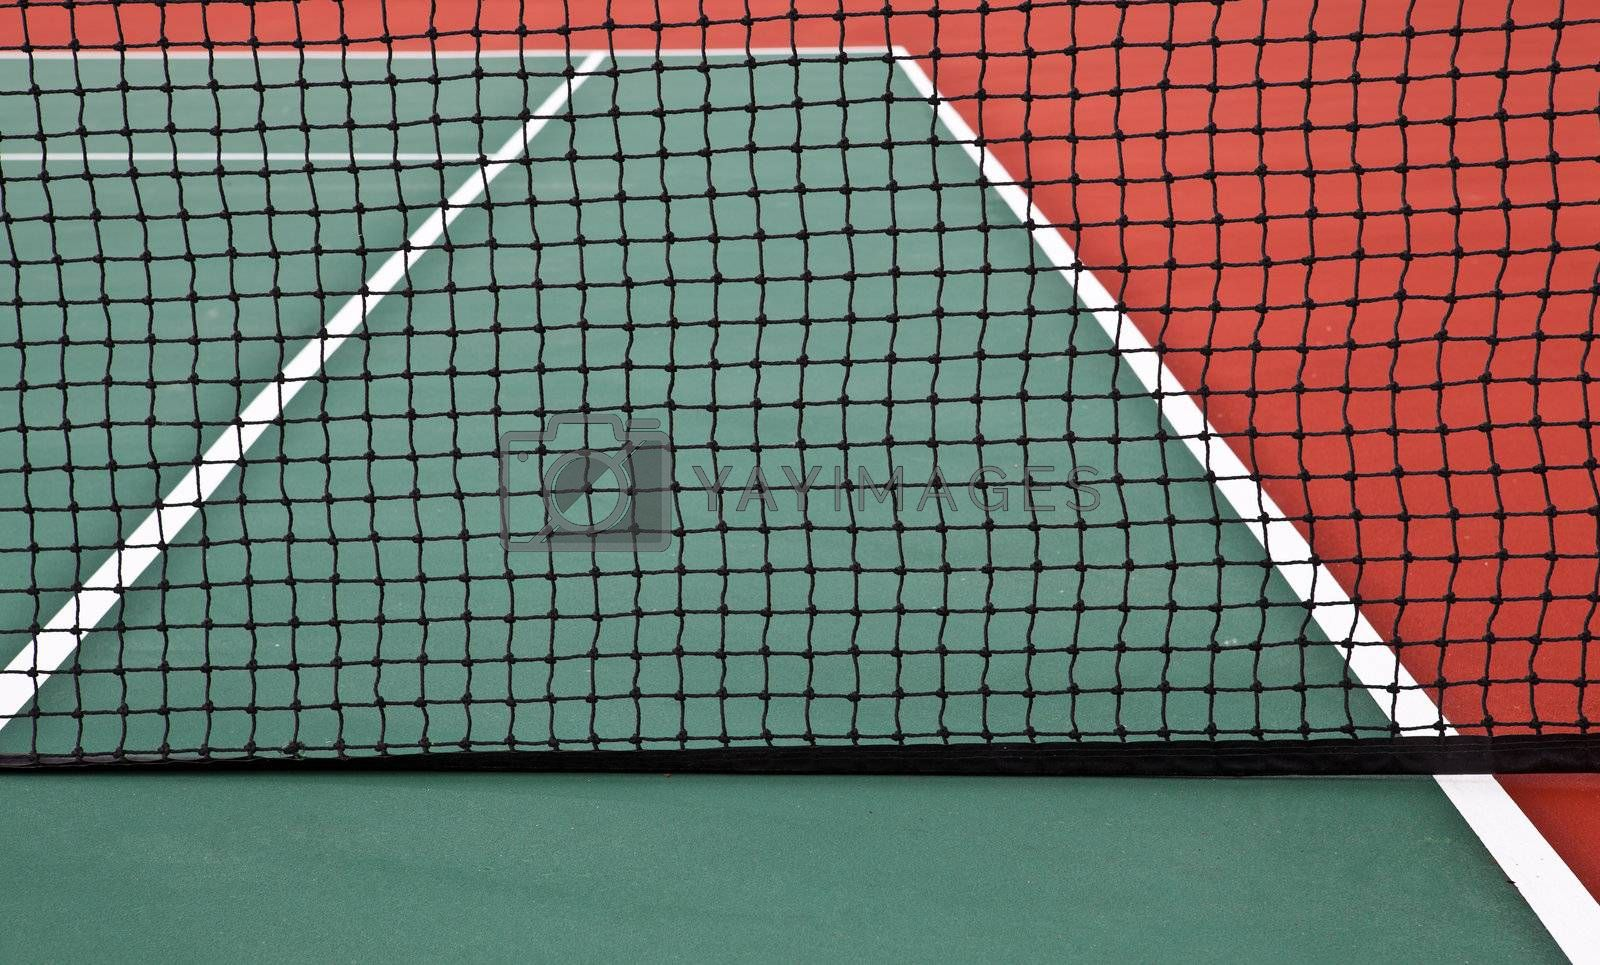 Tennis Court with net